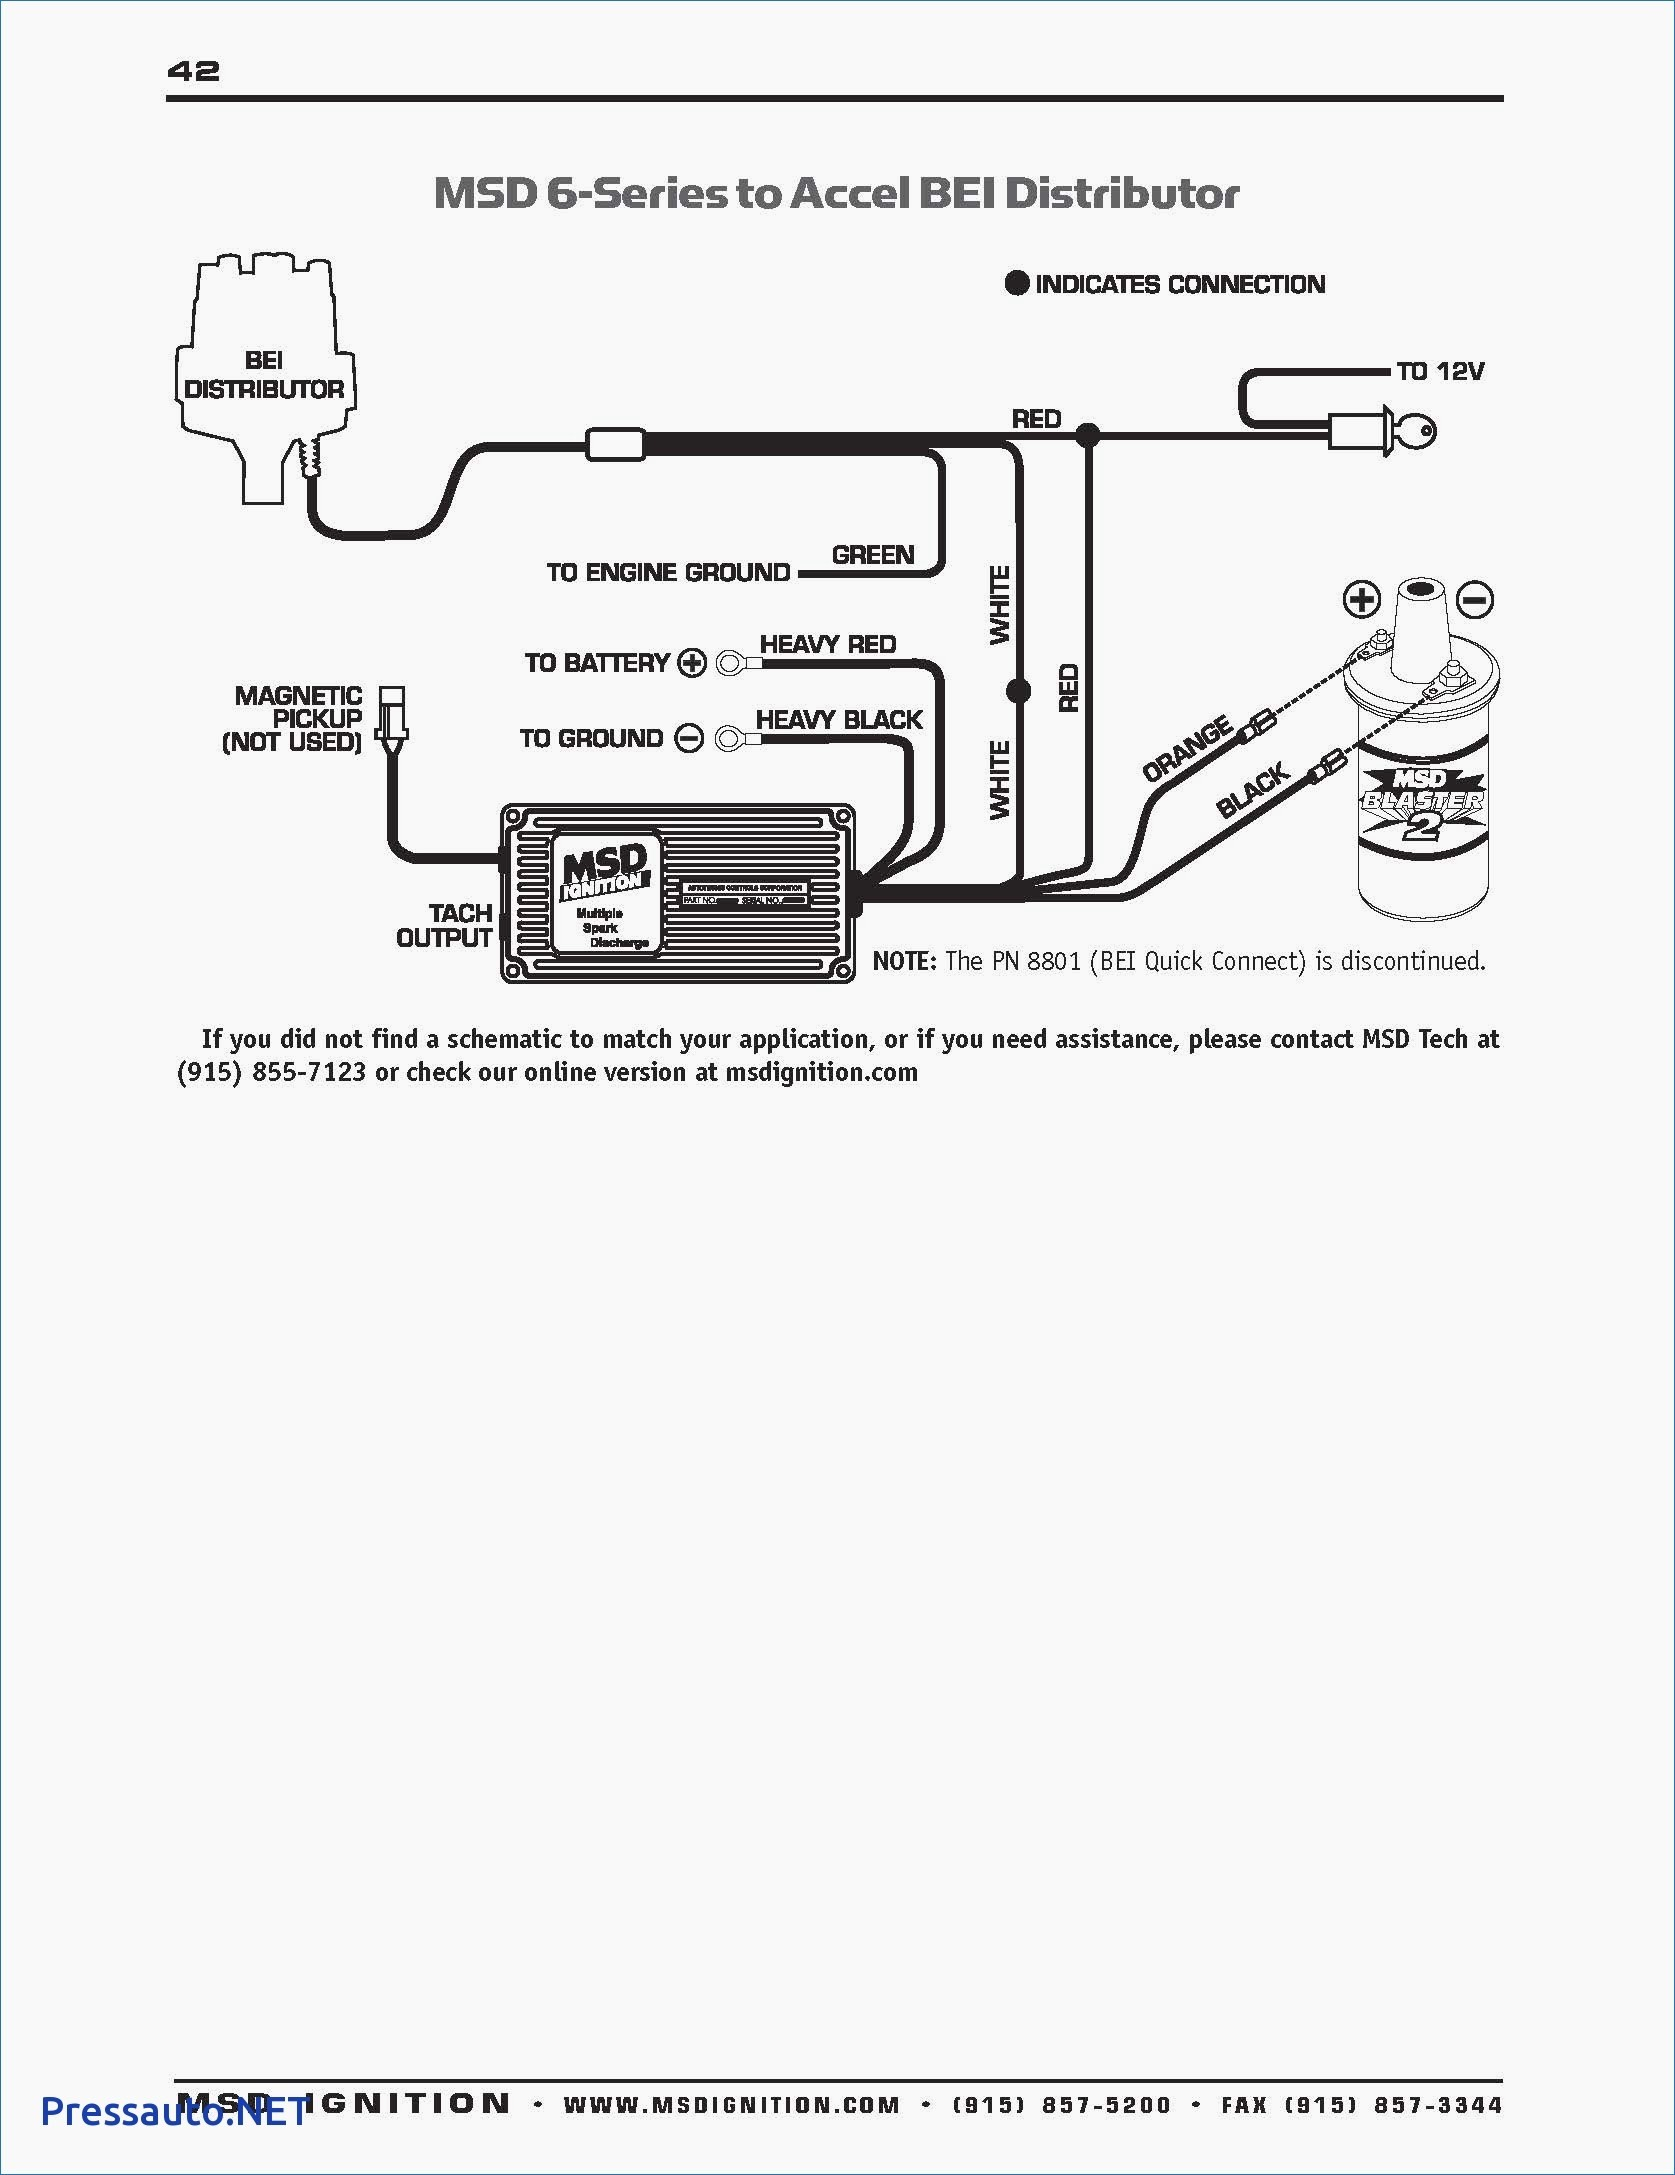 Hei Distributor Wiring Diagram Stunning Accel Distributor Wiring Diagram Ideas Everything You Of Hei Distributor Wiring Diagram Msd Ignition Wiring Diagrams Throughout 6a Diagram to Distributor